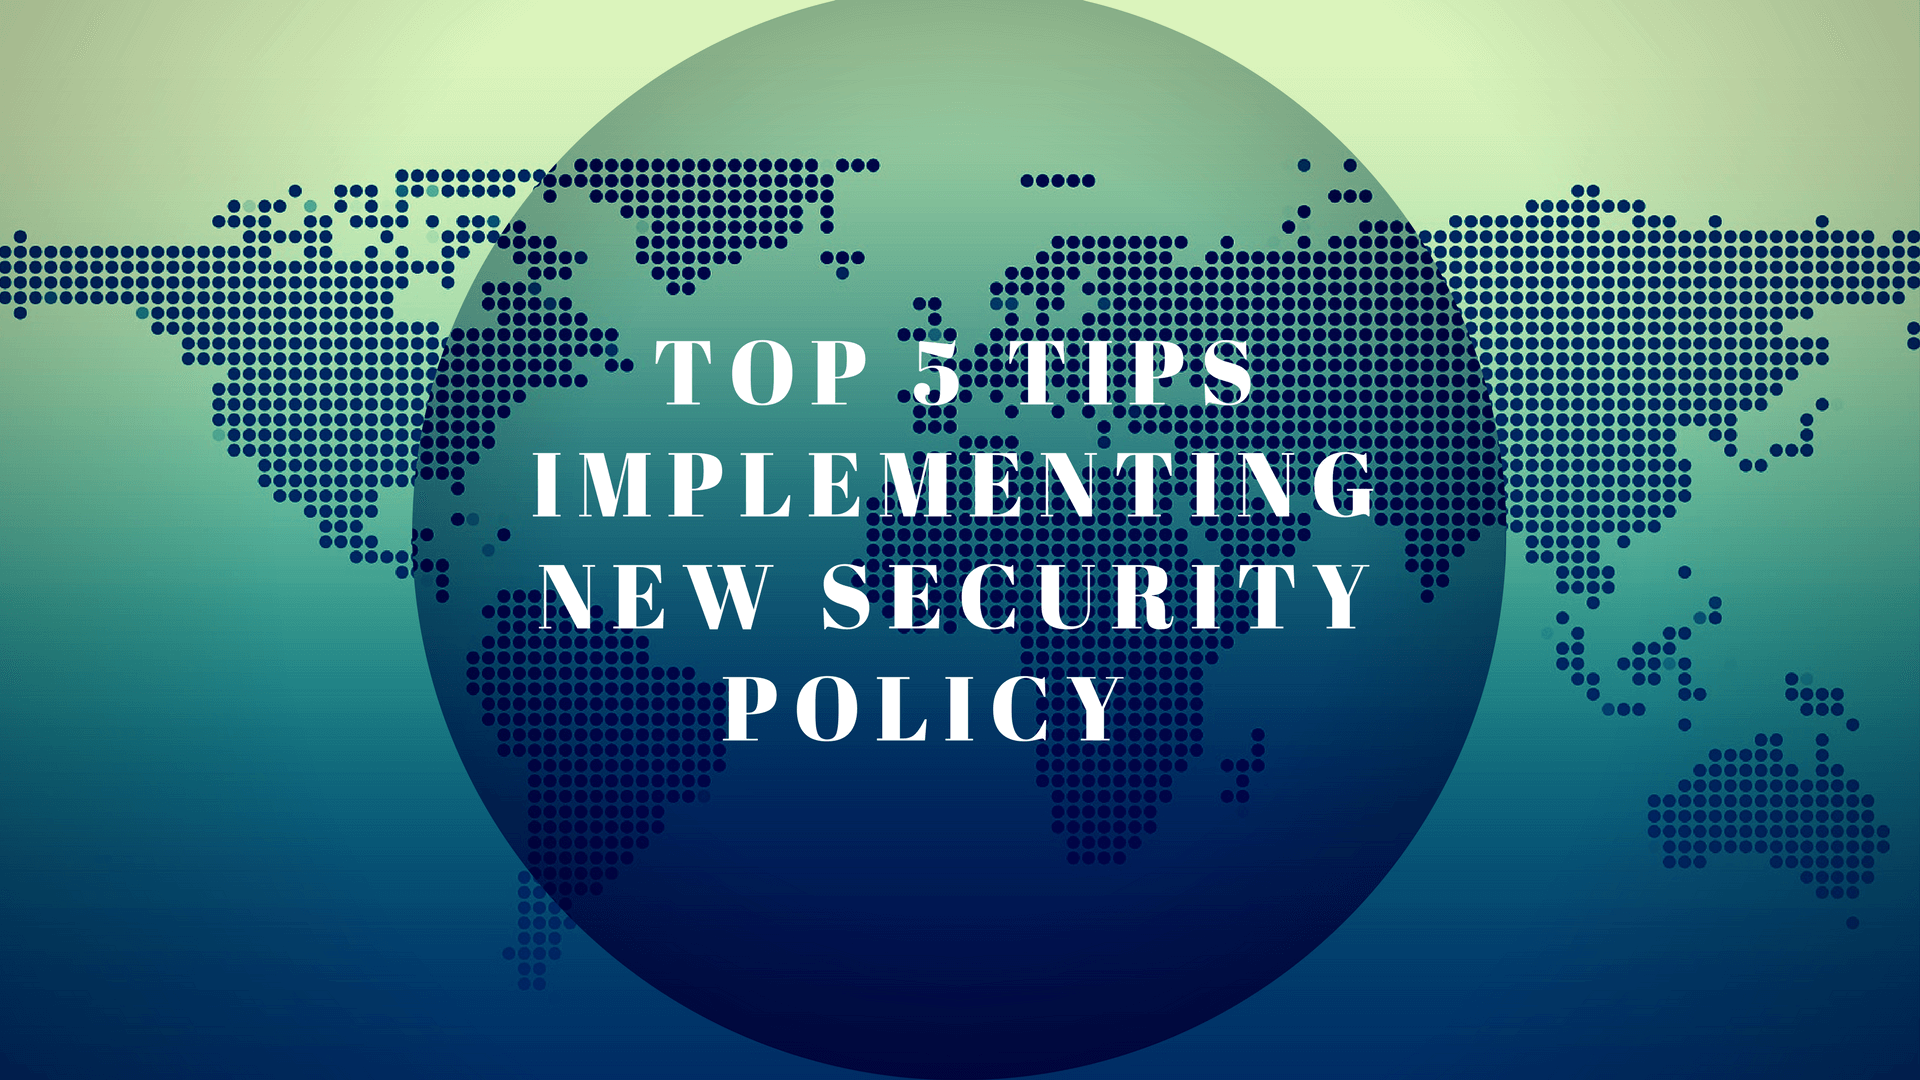 Top 5 Tips to Keep in Mind When Implementing a New Security Policy